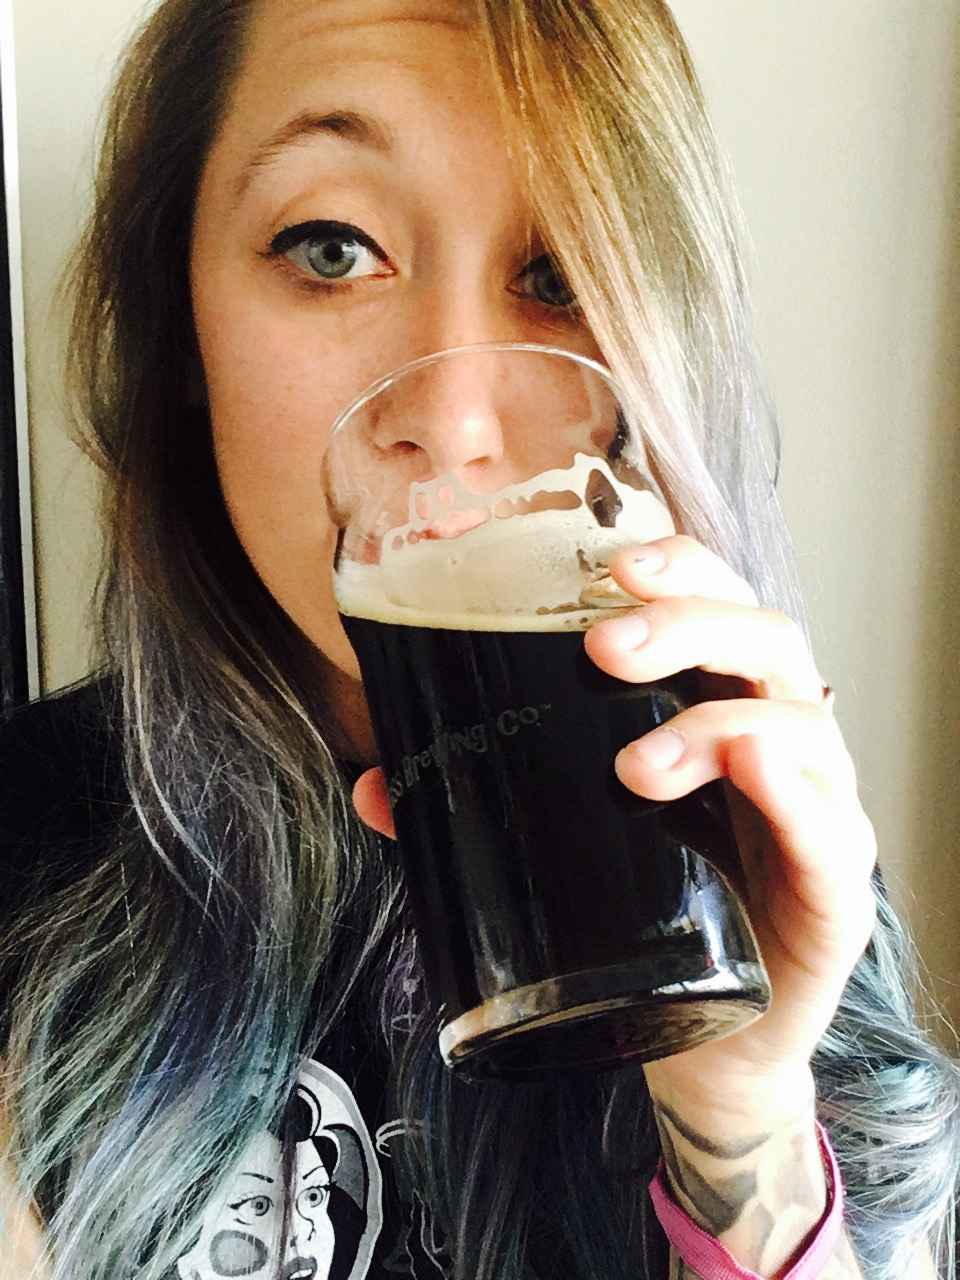 Kayla Hughes After a start in craft beer with World of Beerin Florida, Kayla is now the General Manager of Hop & Crafts, a Draft MagazineTop 100 Beer Bar in Nashville. She loves all kinds of beers, especially sours, saisons, and Miller Lite.